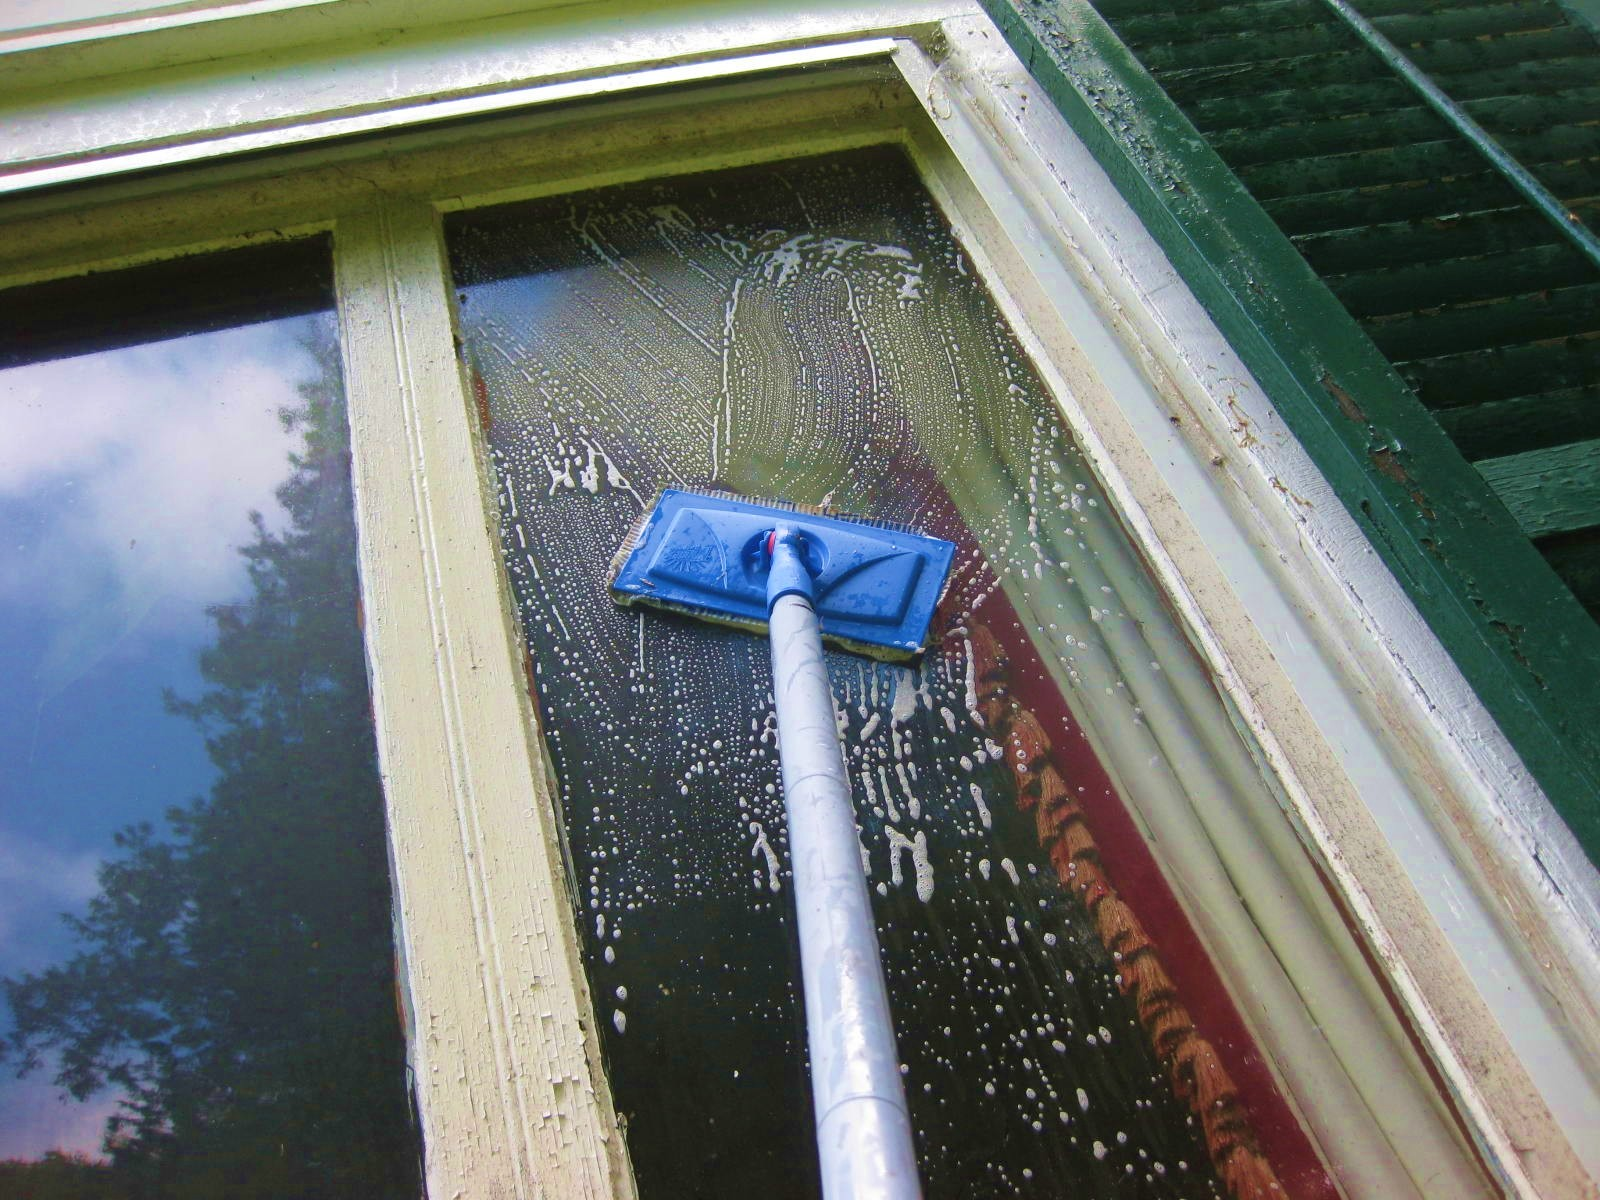 How Clean Old Windows Kevin Lee Jacobs